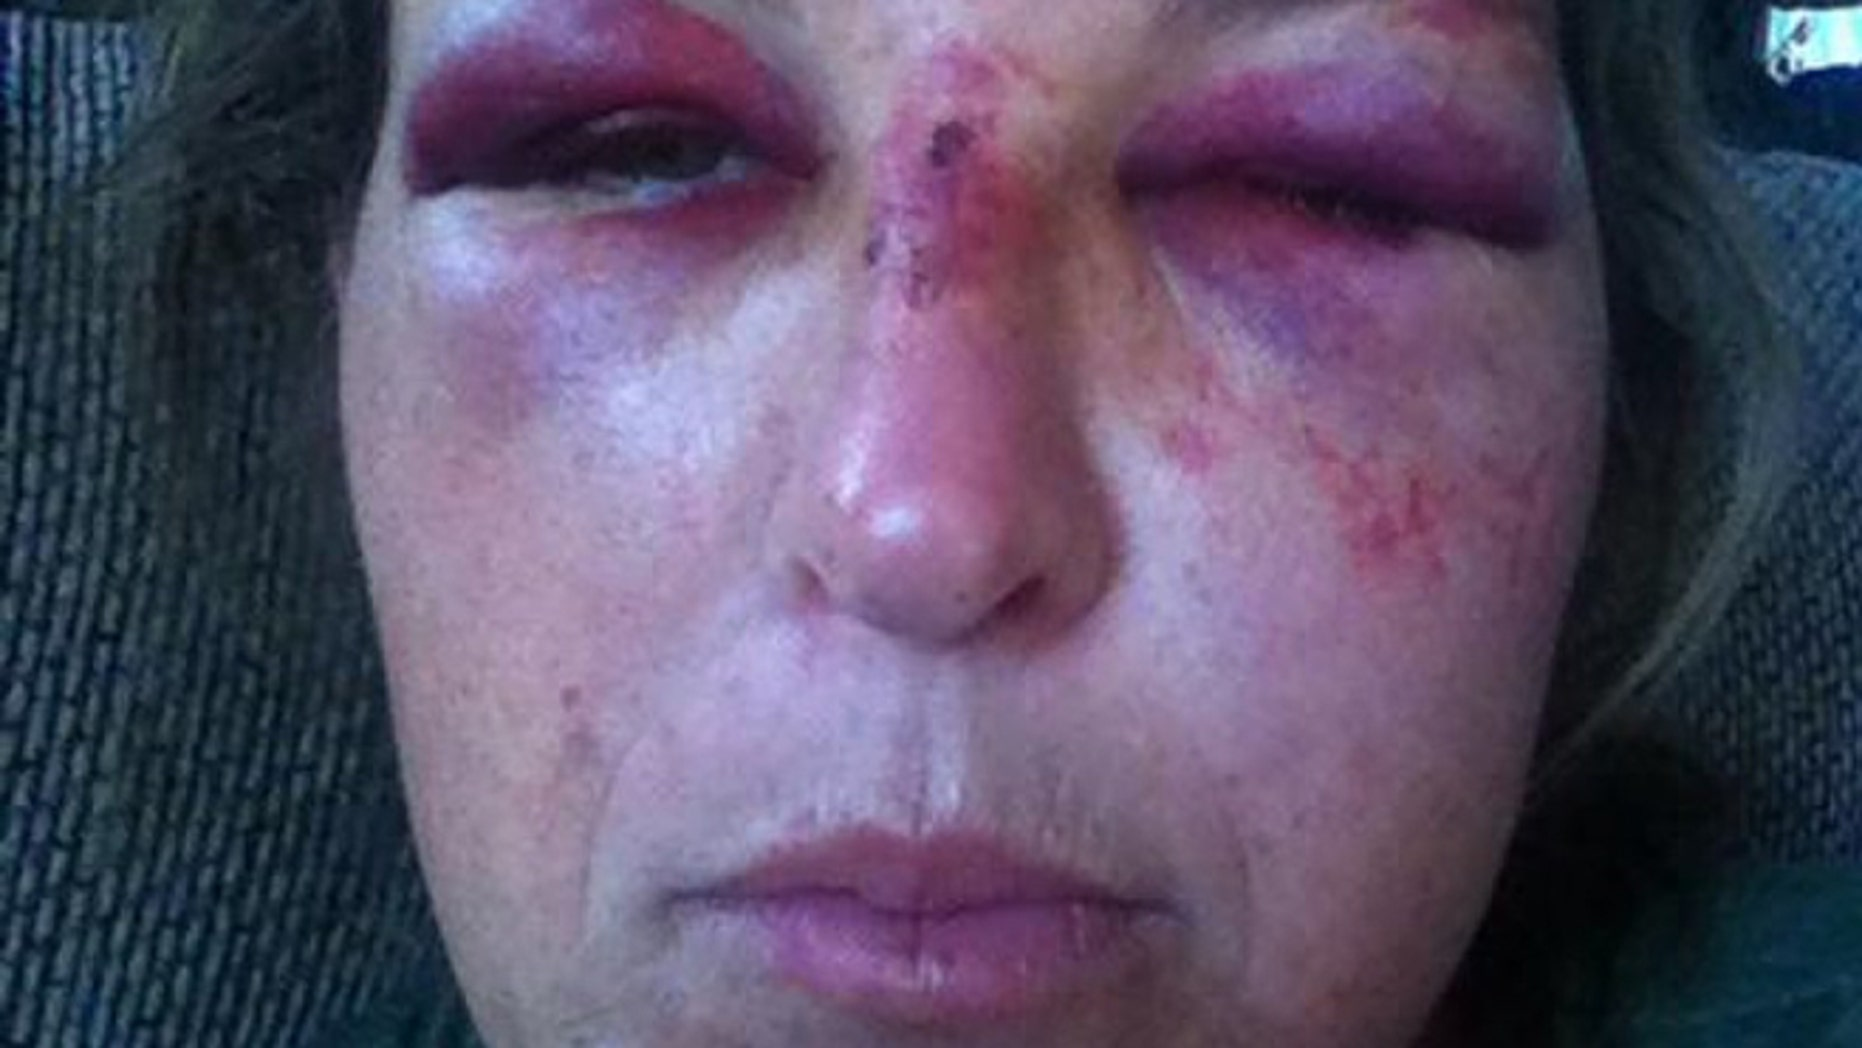 Martha McClure was injured when she was allegedly hit in the face with a shovel.